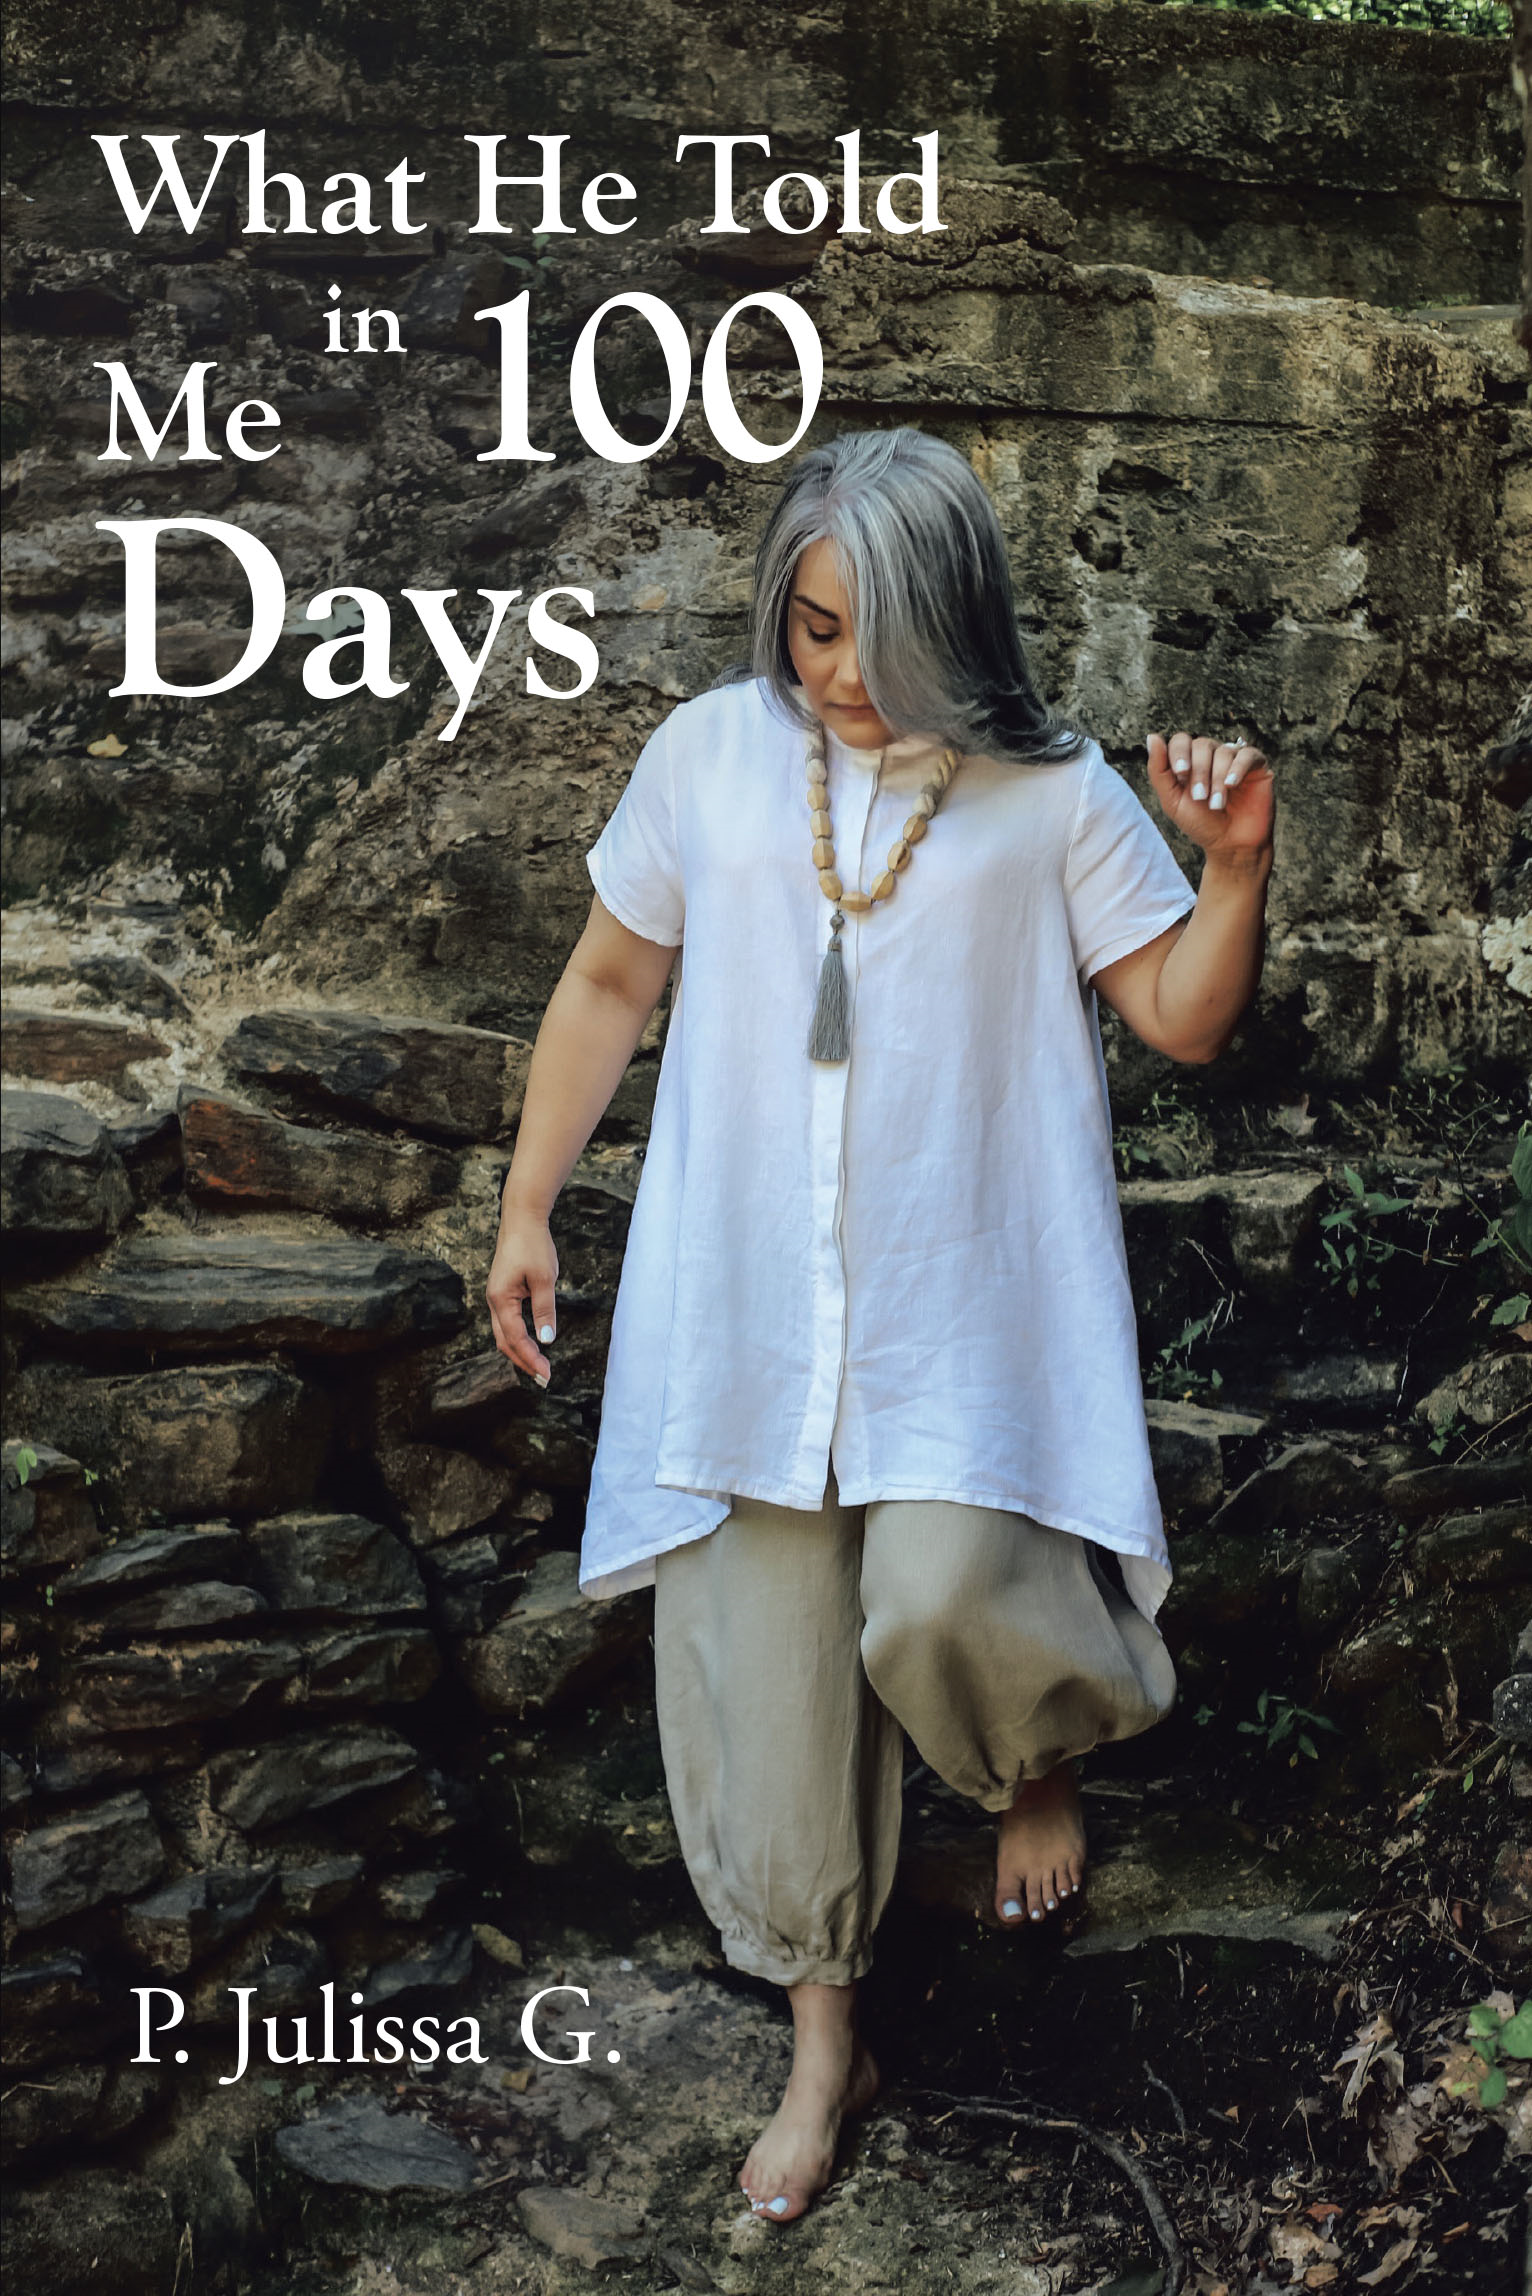 What He Told Me in 100 Days